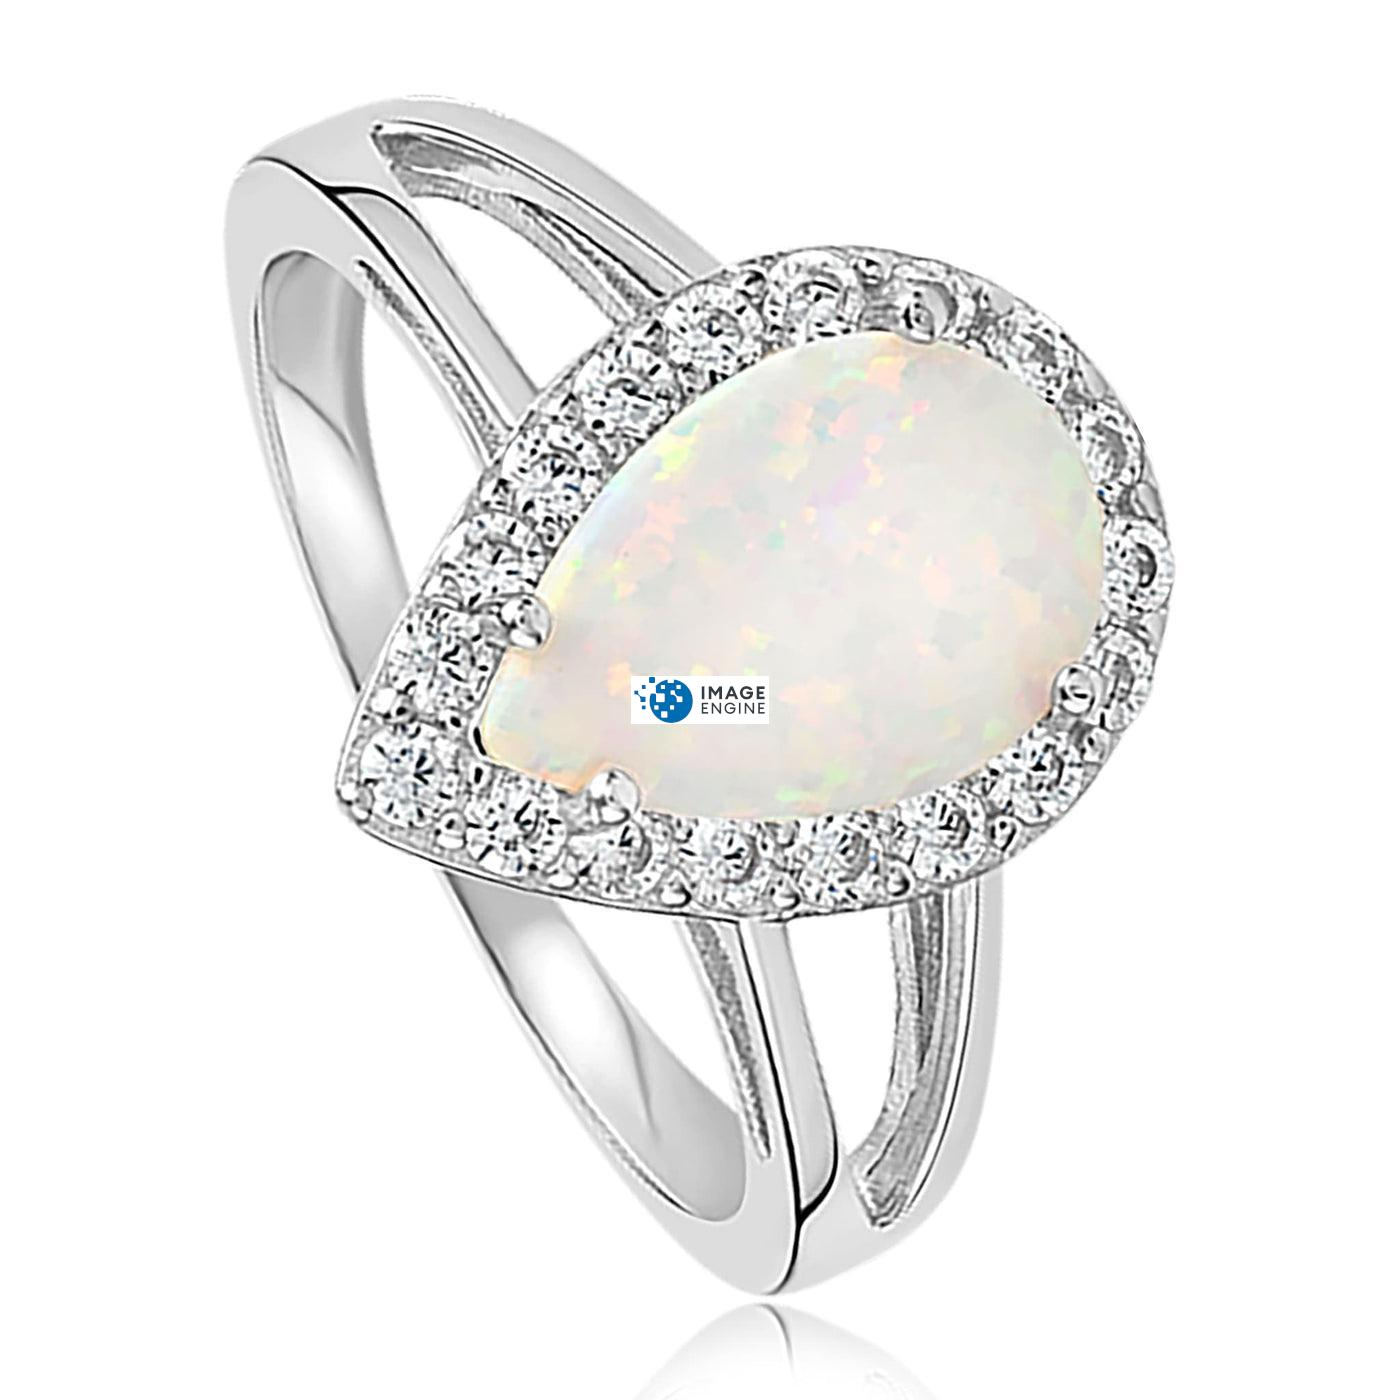 White Fire Champagne Opal Ring - Three Quarter View - 925 Sterling Silver